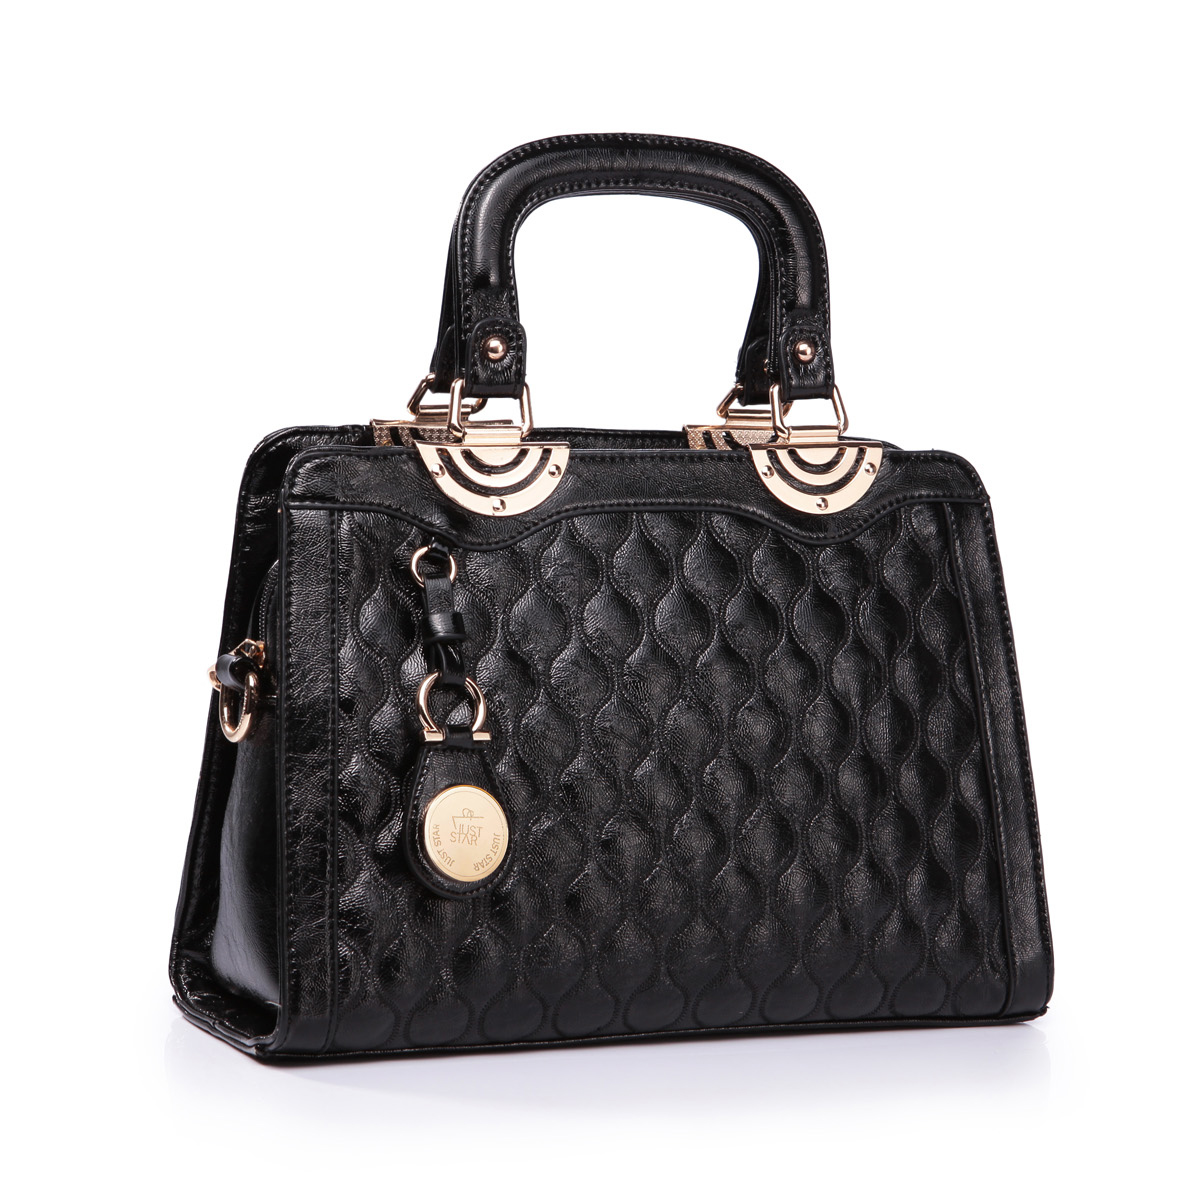 Shop purses, handbags and clutches from White House Black Market in a variety of styles and colors. Free shipping for all WHBM rewards members.